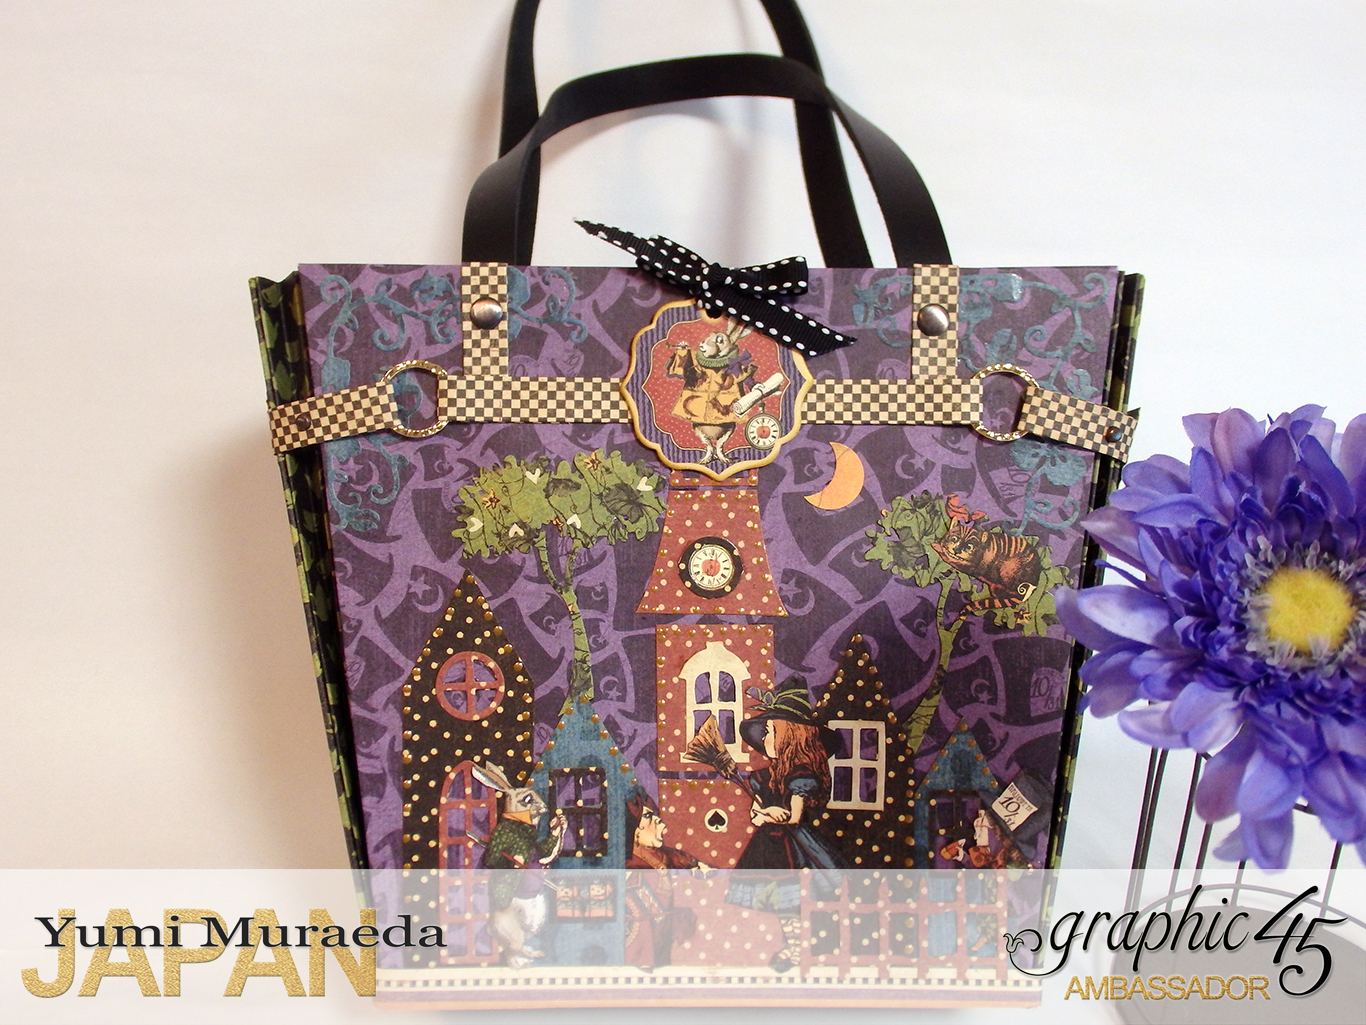 TownToteBagGraphic45HalloweenWonderlandbyYumiMuraeadaProductbyGraphic45Photo1.jpg